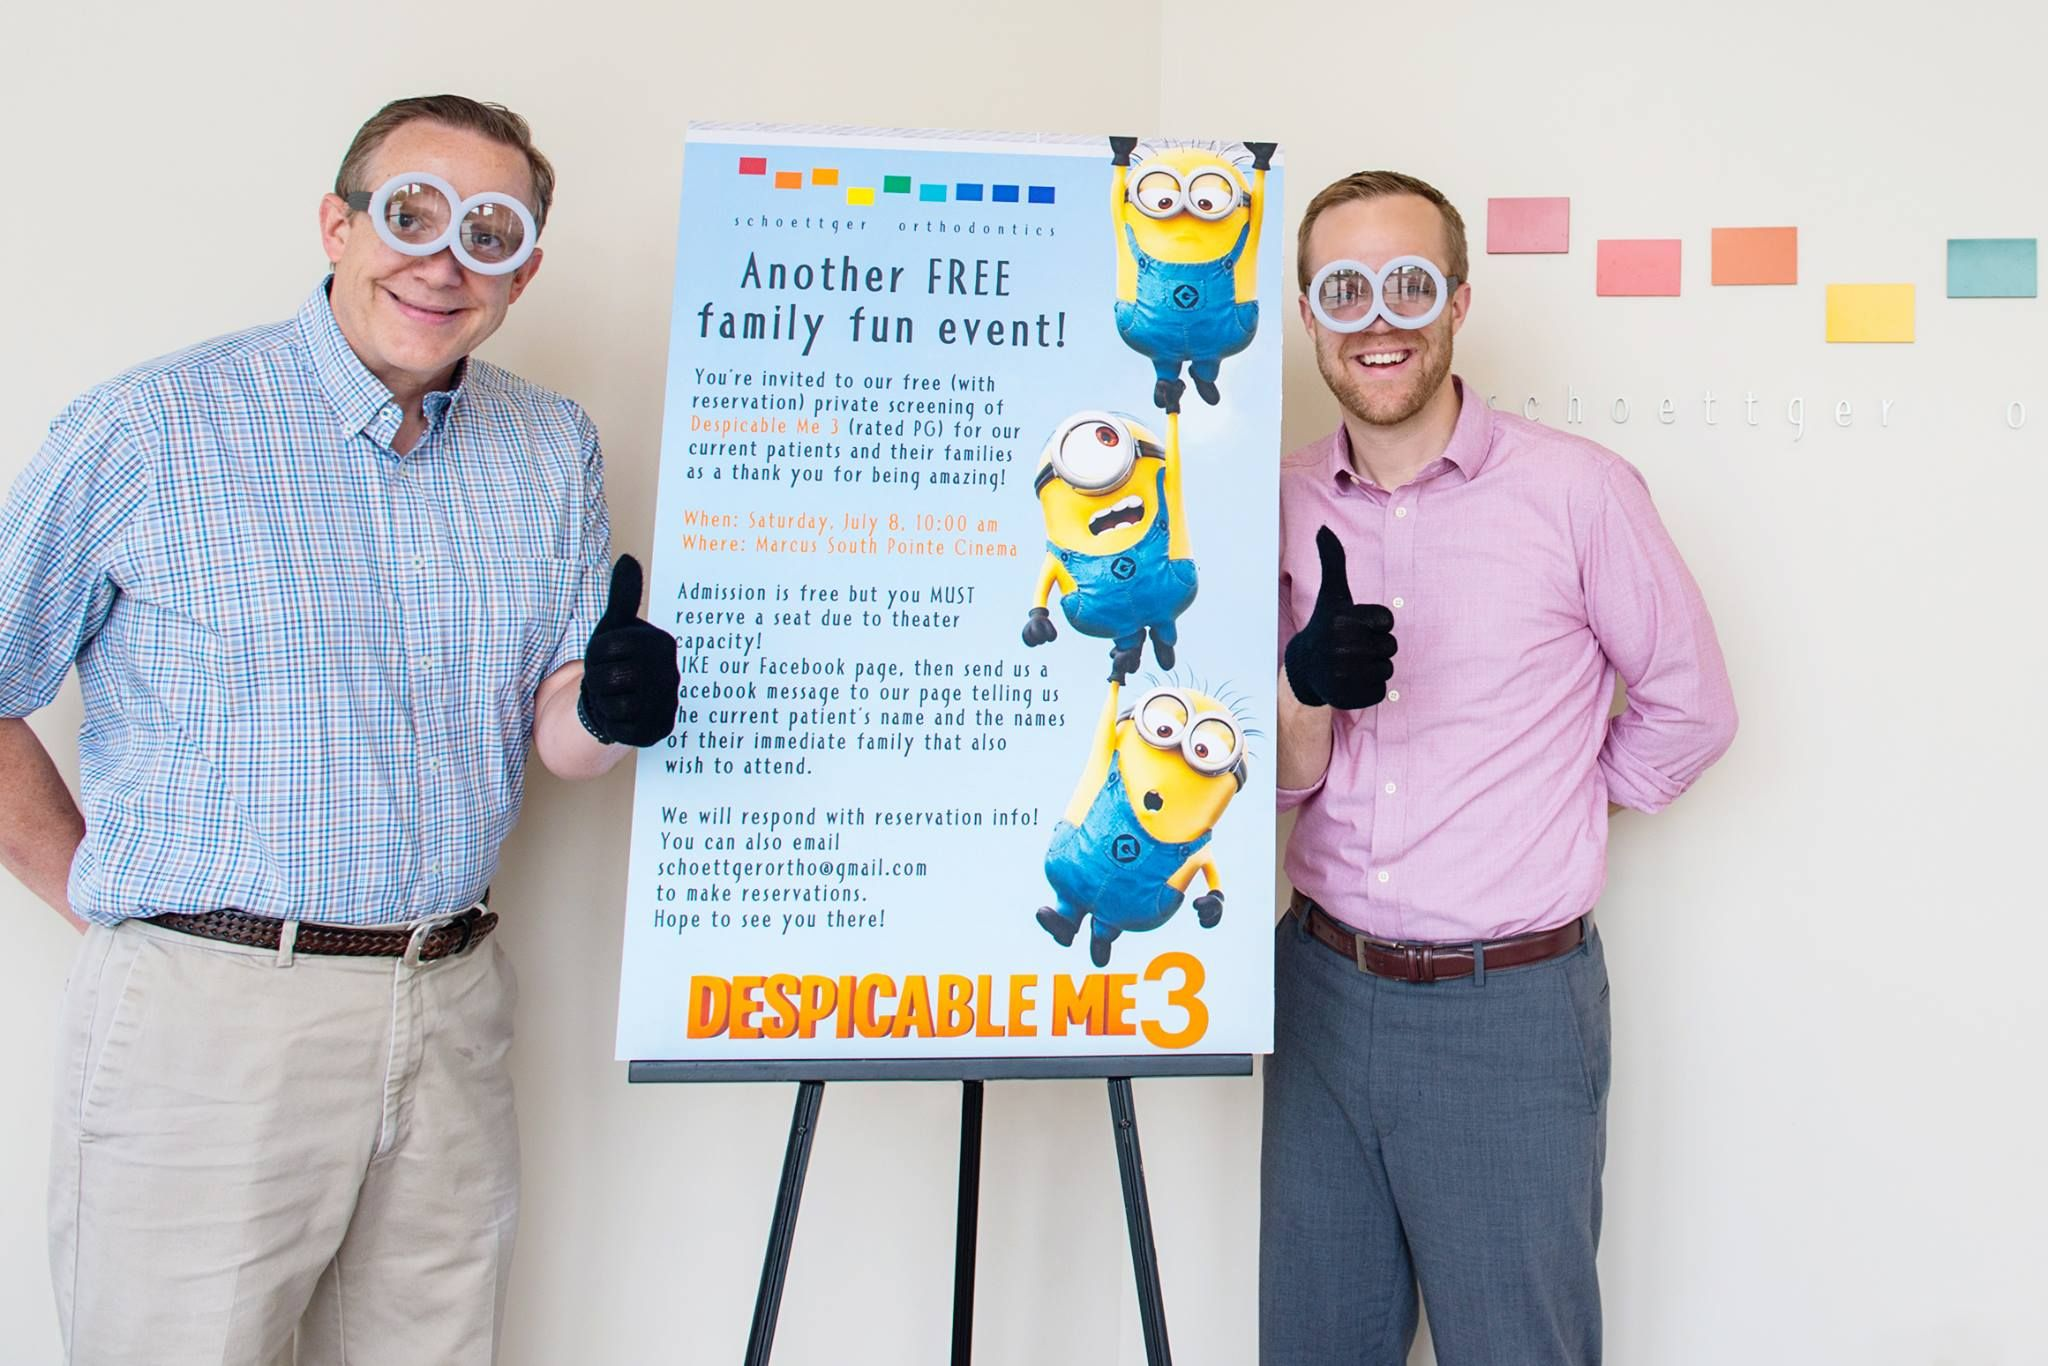 Despicable Me 3 Private Showing coming soon!